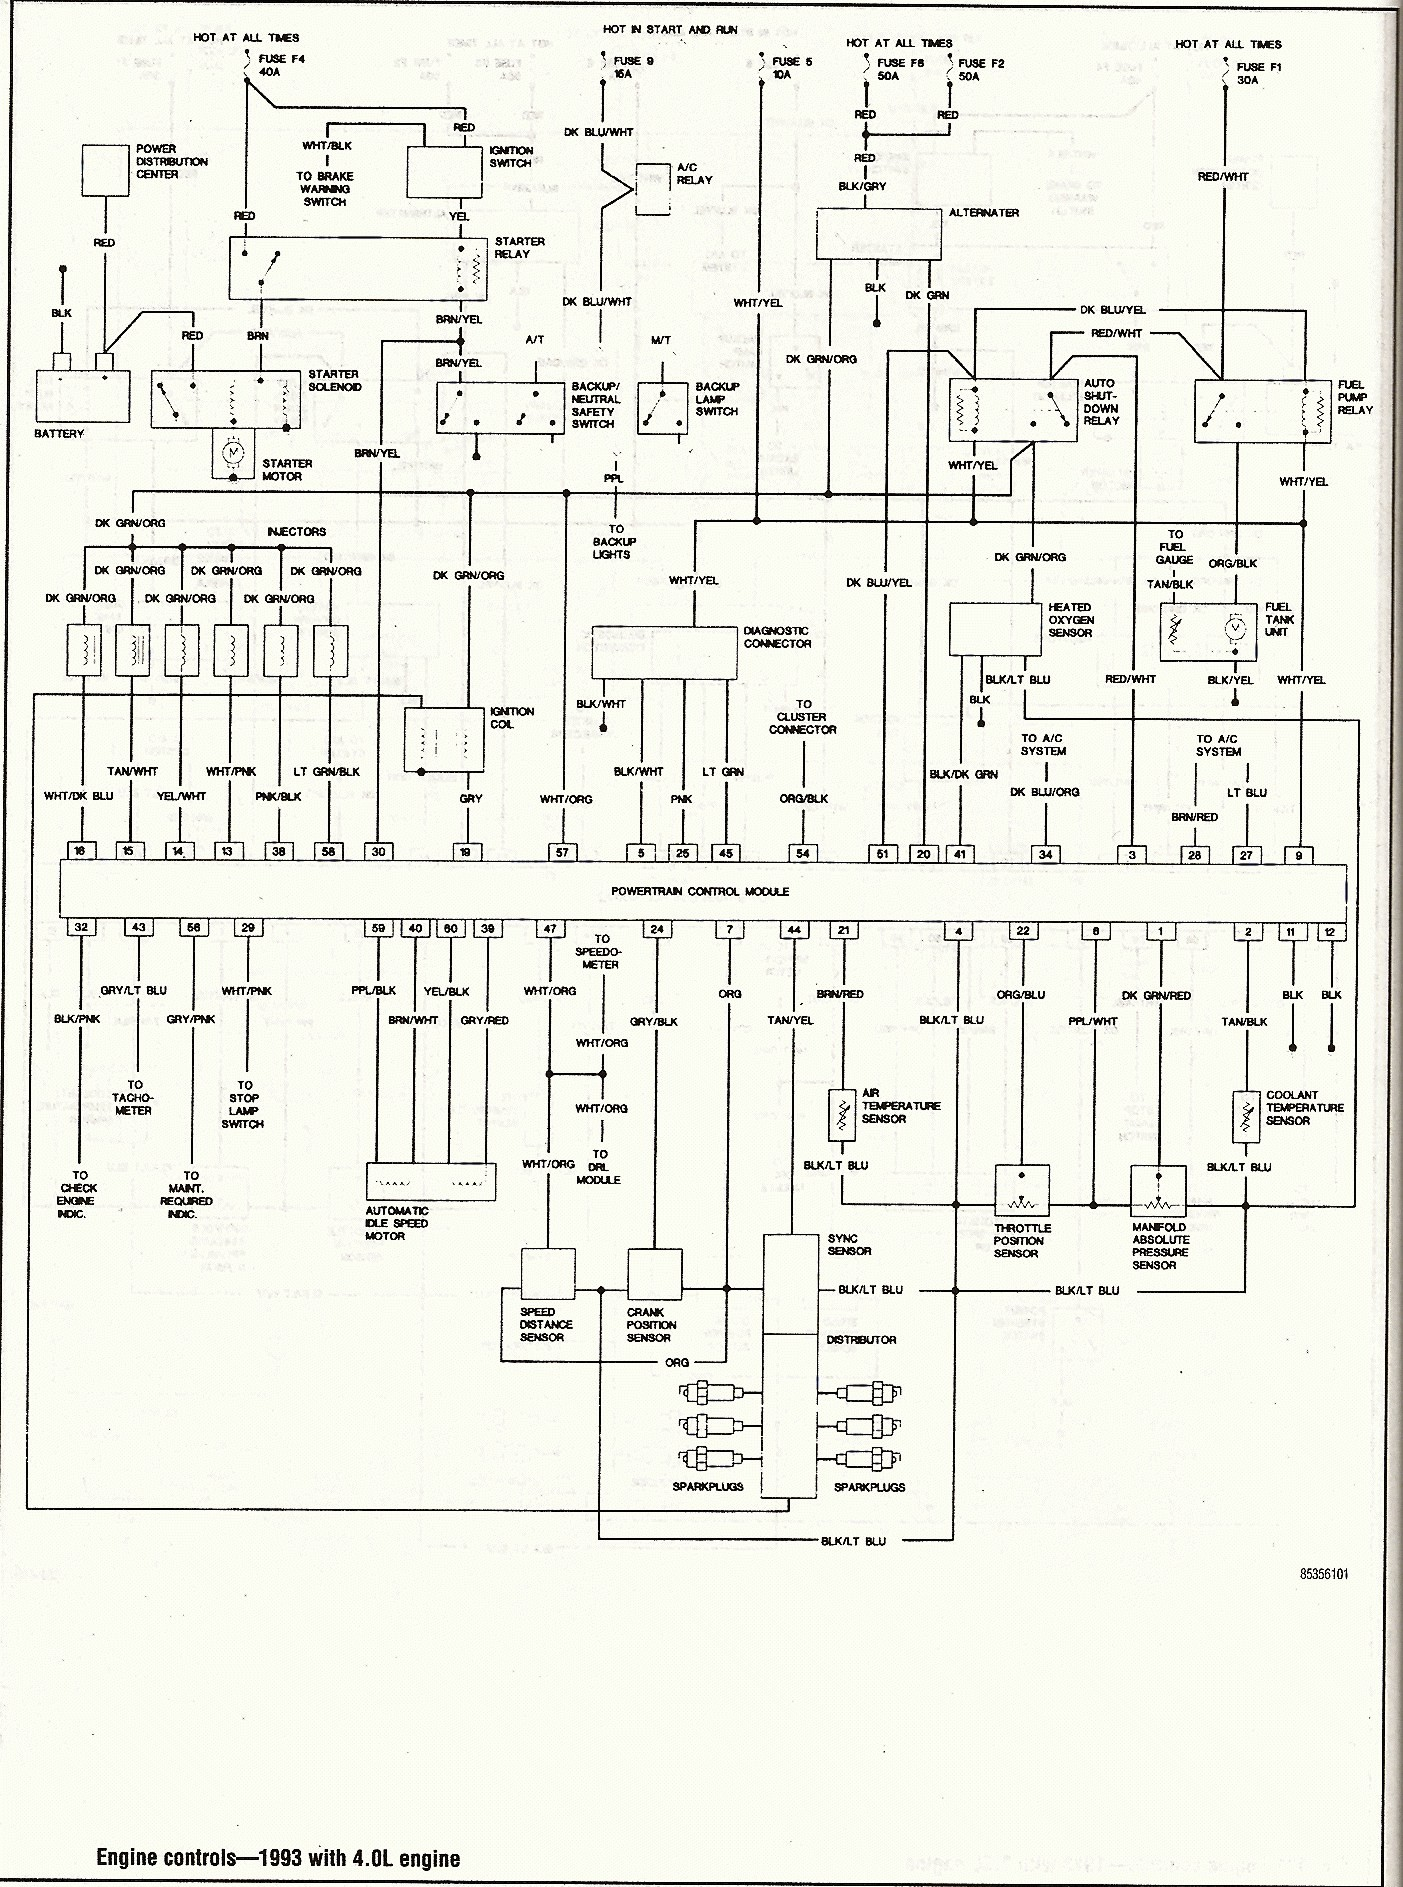 2001 Wrangler Wiring Diagram Schematics Diagrams For Jeep Example Electrical U2022 Rh Olkha Co Tj